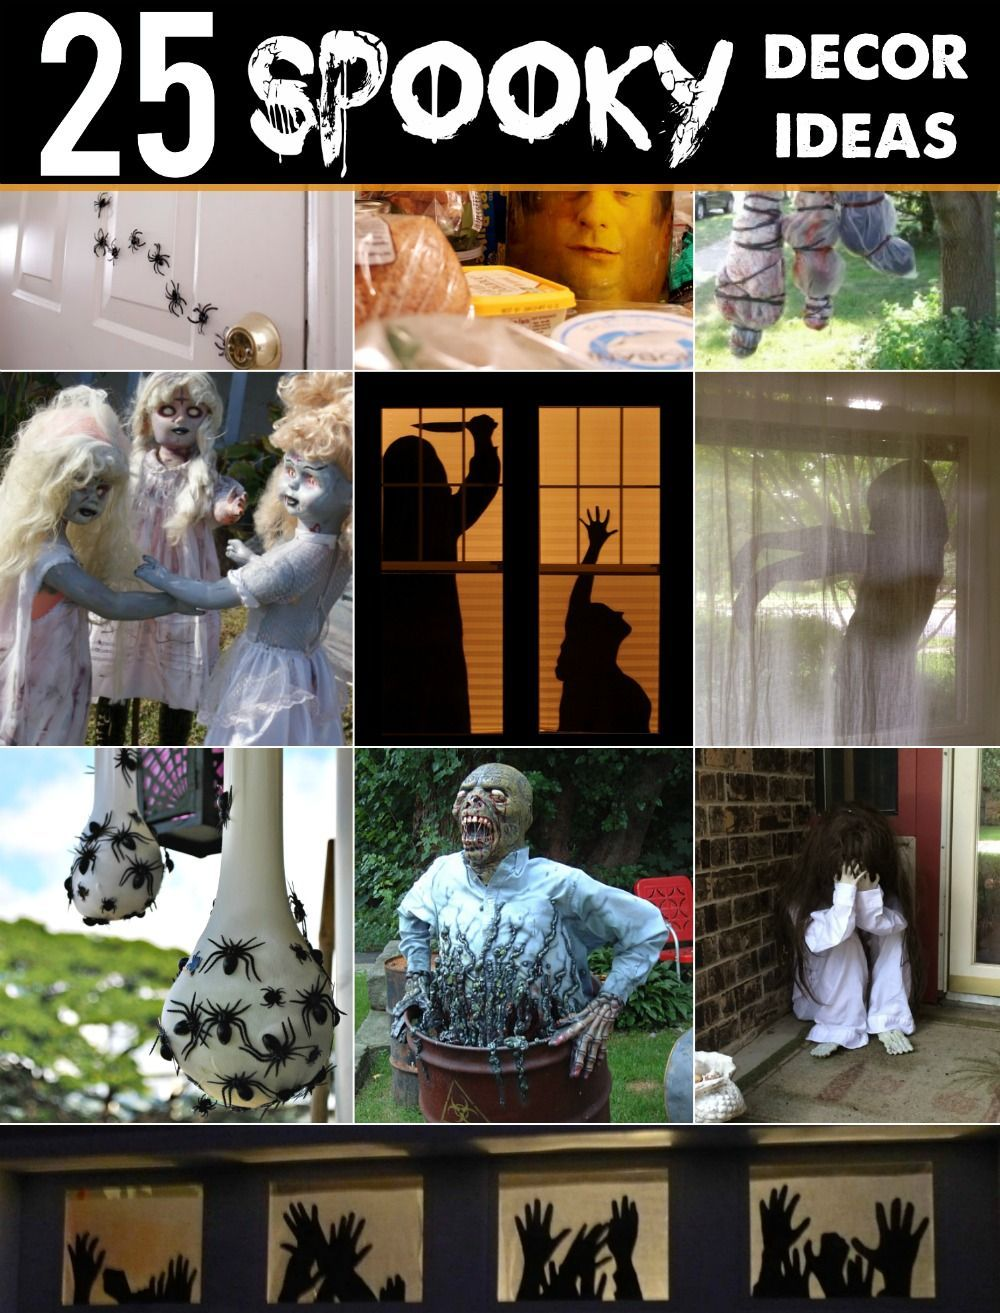 Spooky Halloween Decor Ideas for outside your house and decorating - scary halloween decor